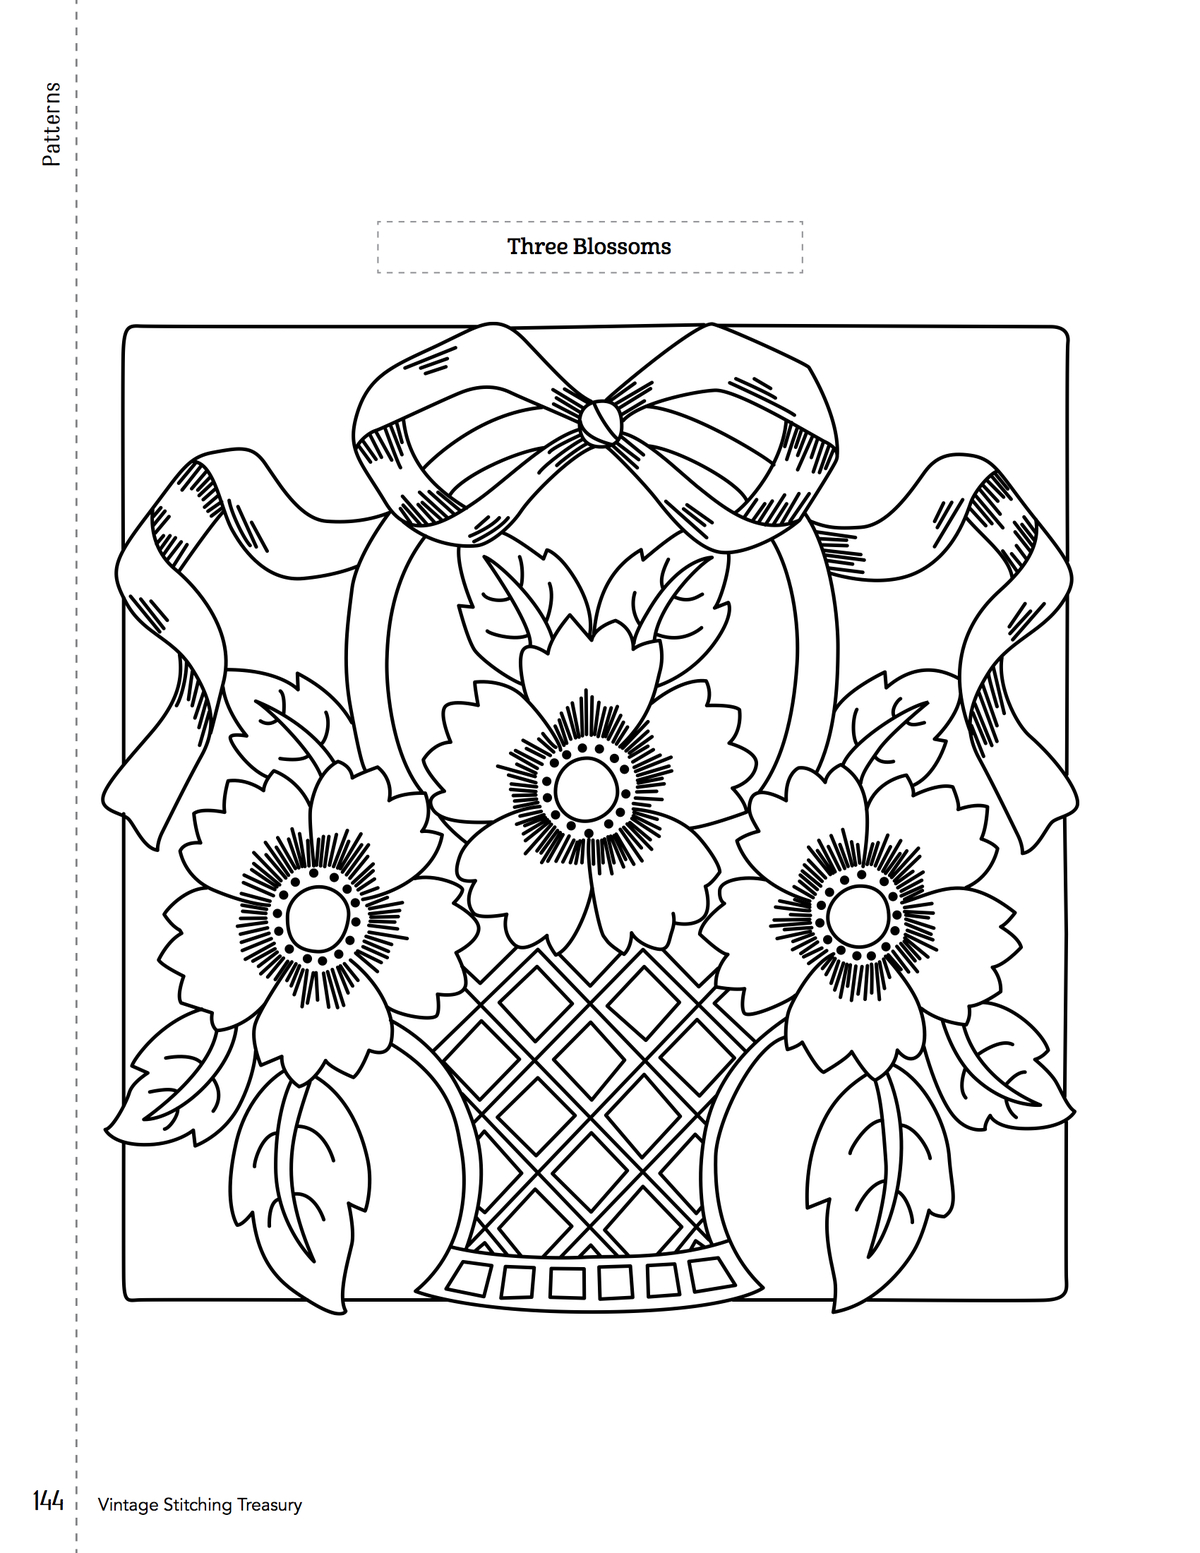 Art deco embroidery pillow patterns with birds flowers and fruit to print the three blossoms flower pattern zoom in on the image to the left right click save and print bankloansurffo Images